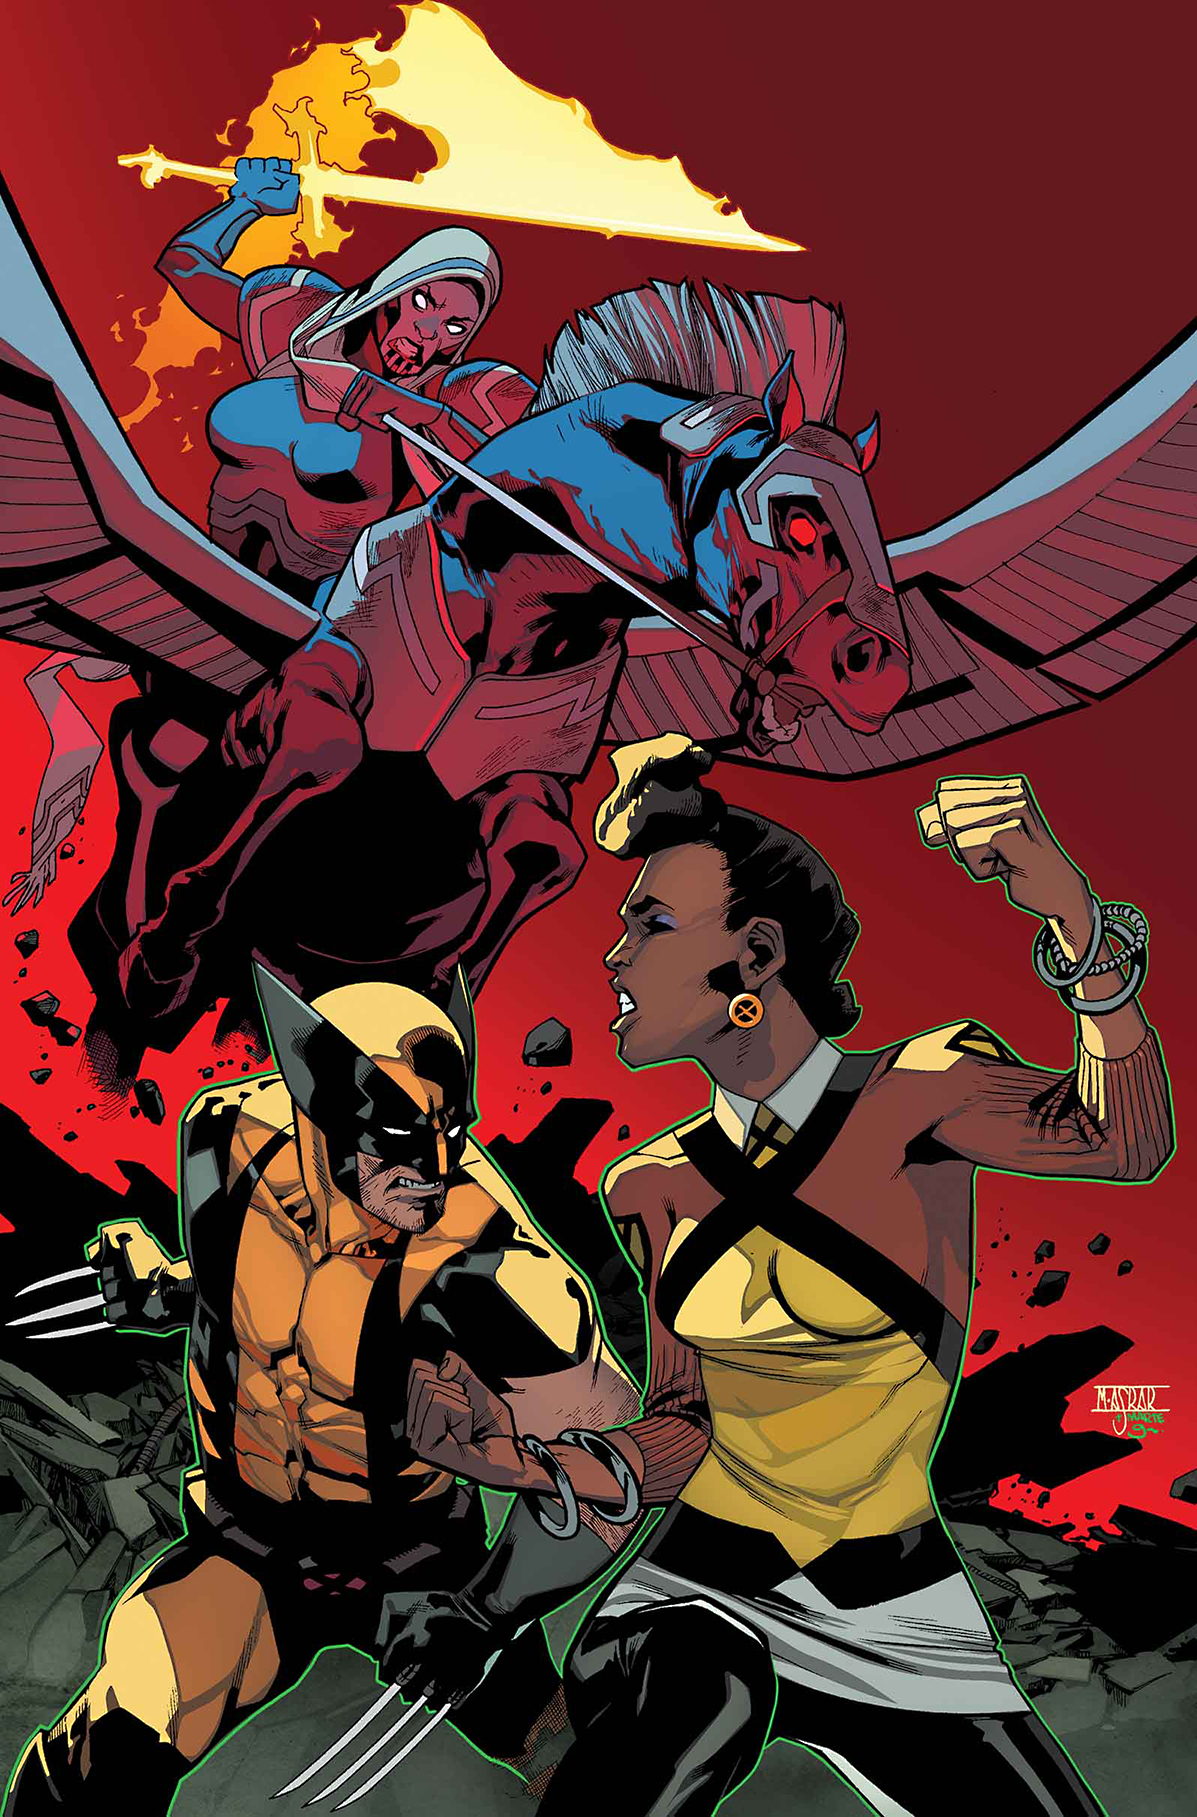 WOLVERINE AND X-MEN #6